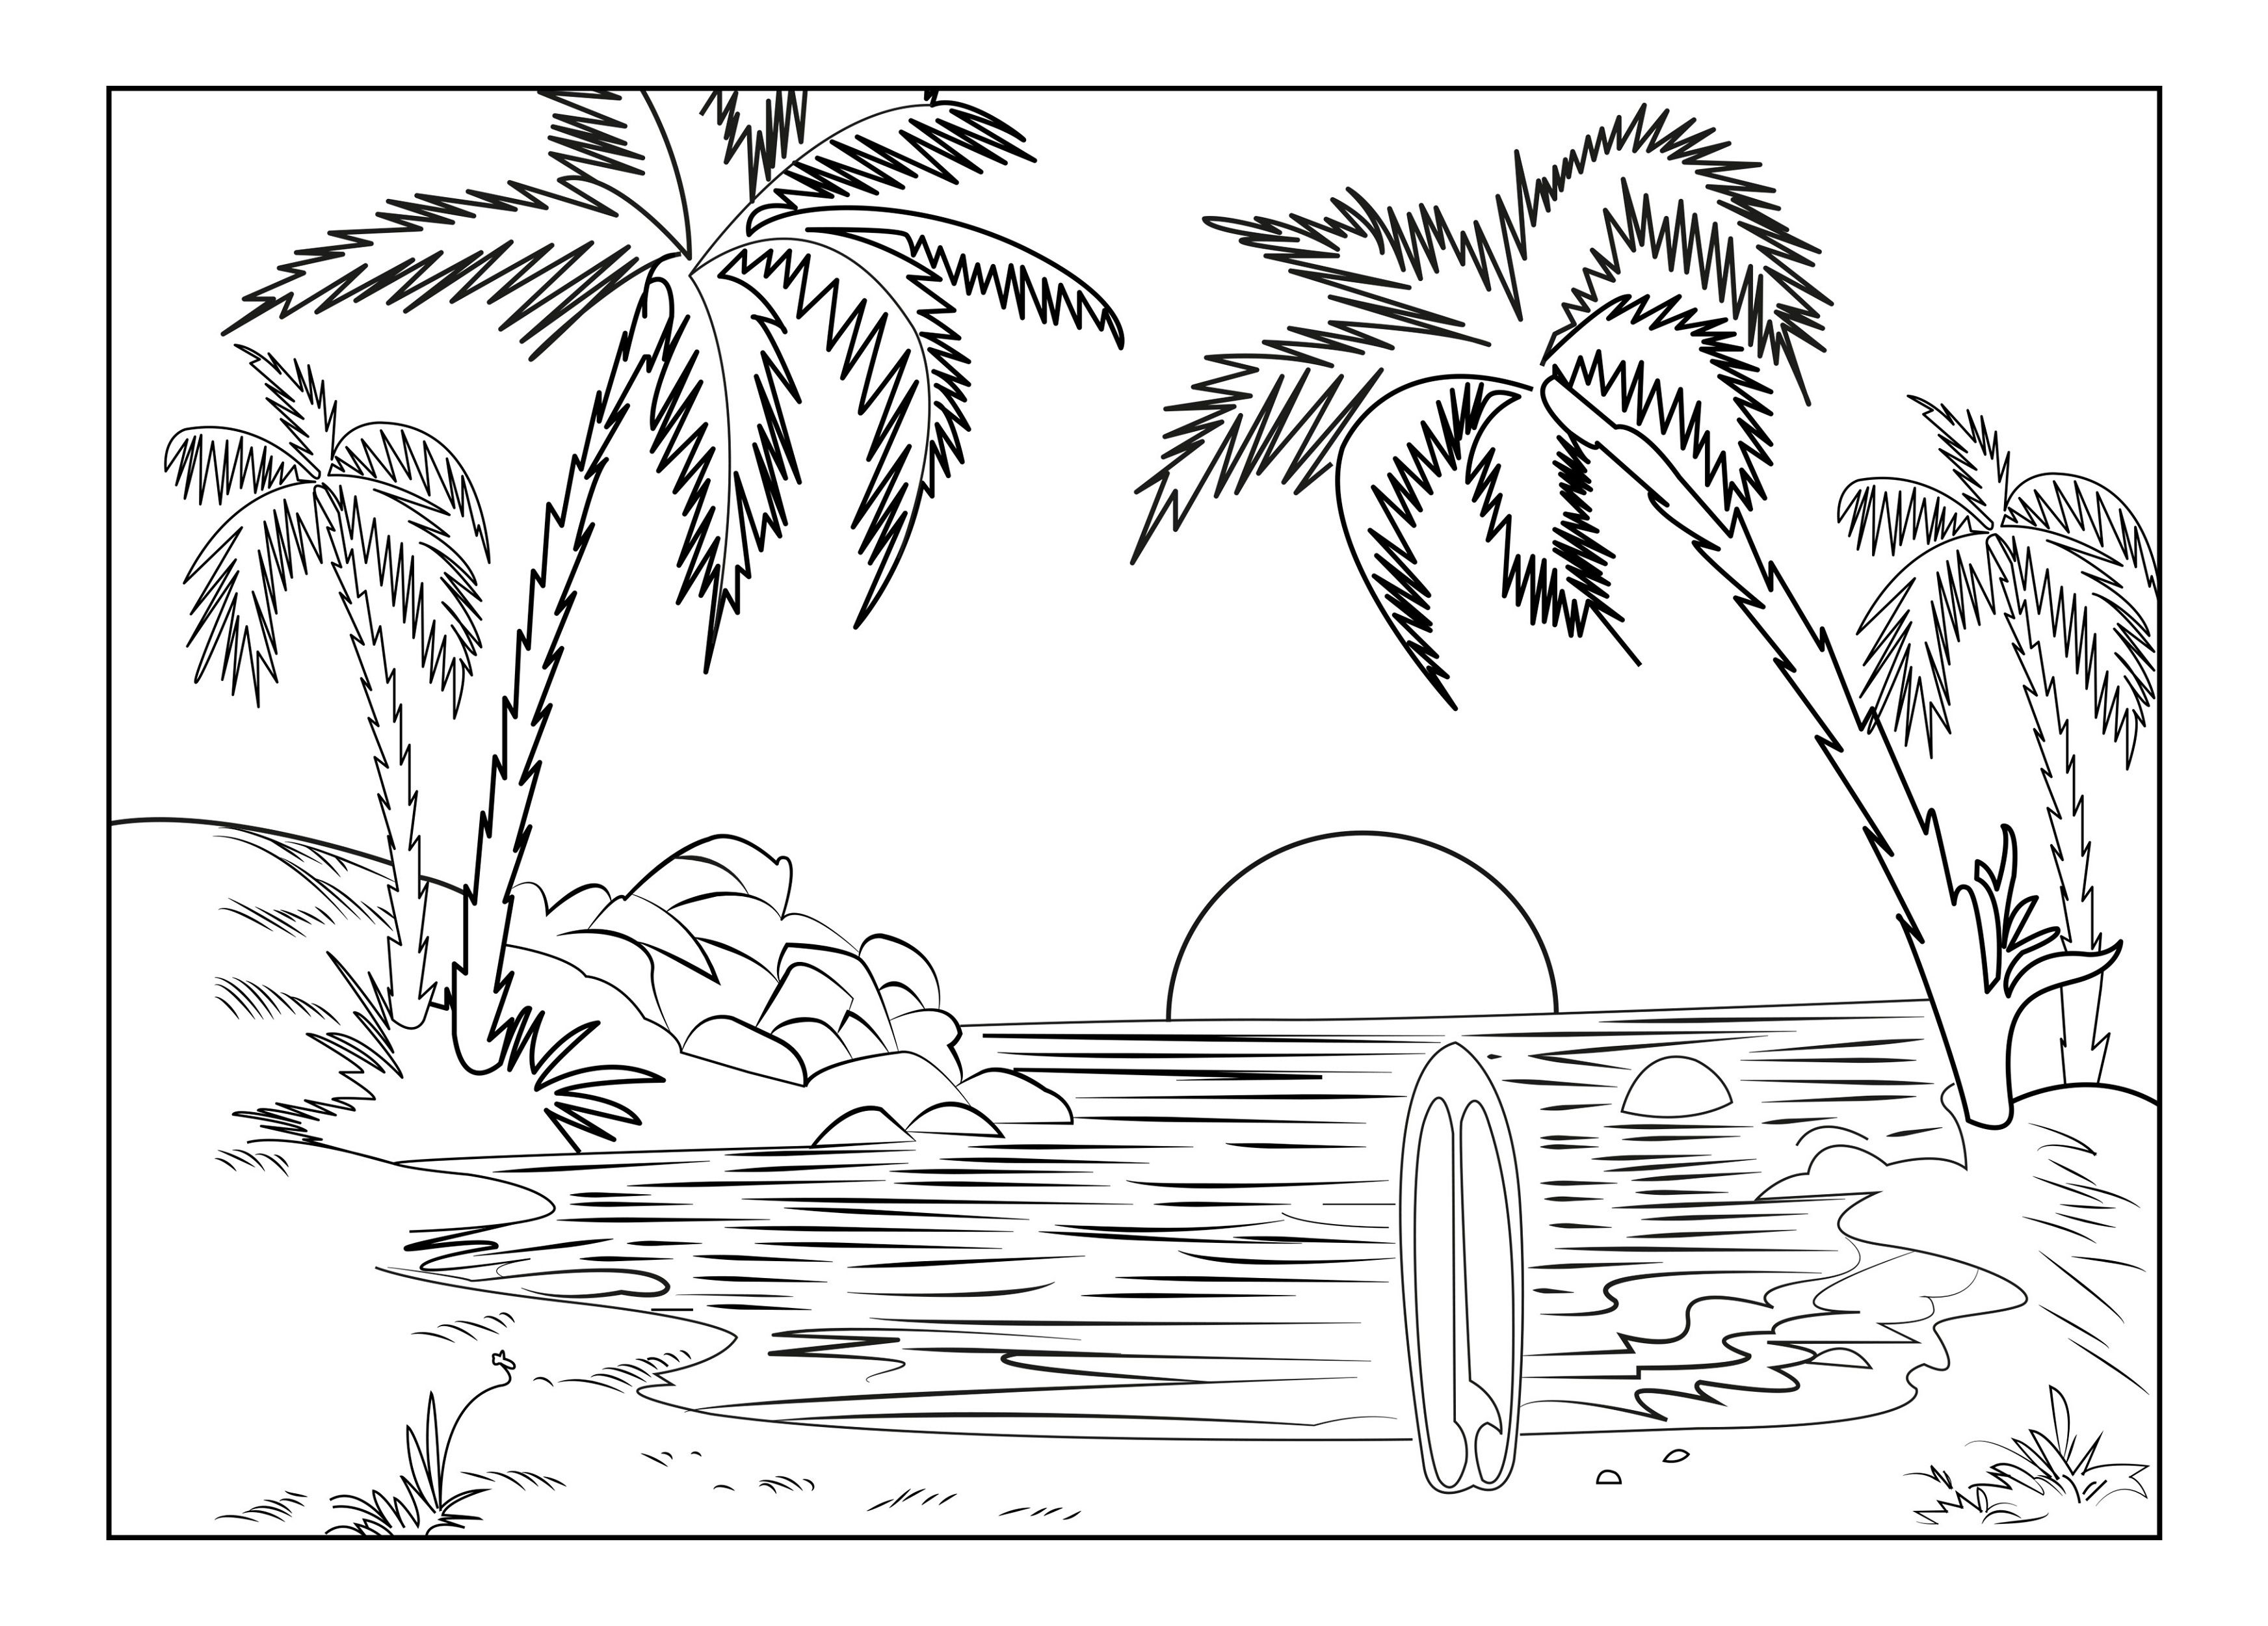 sunset coloring pages free summer clip art images suns sunsets beach more pages coloring sunset